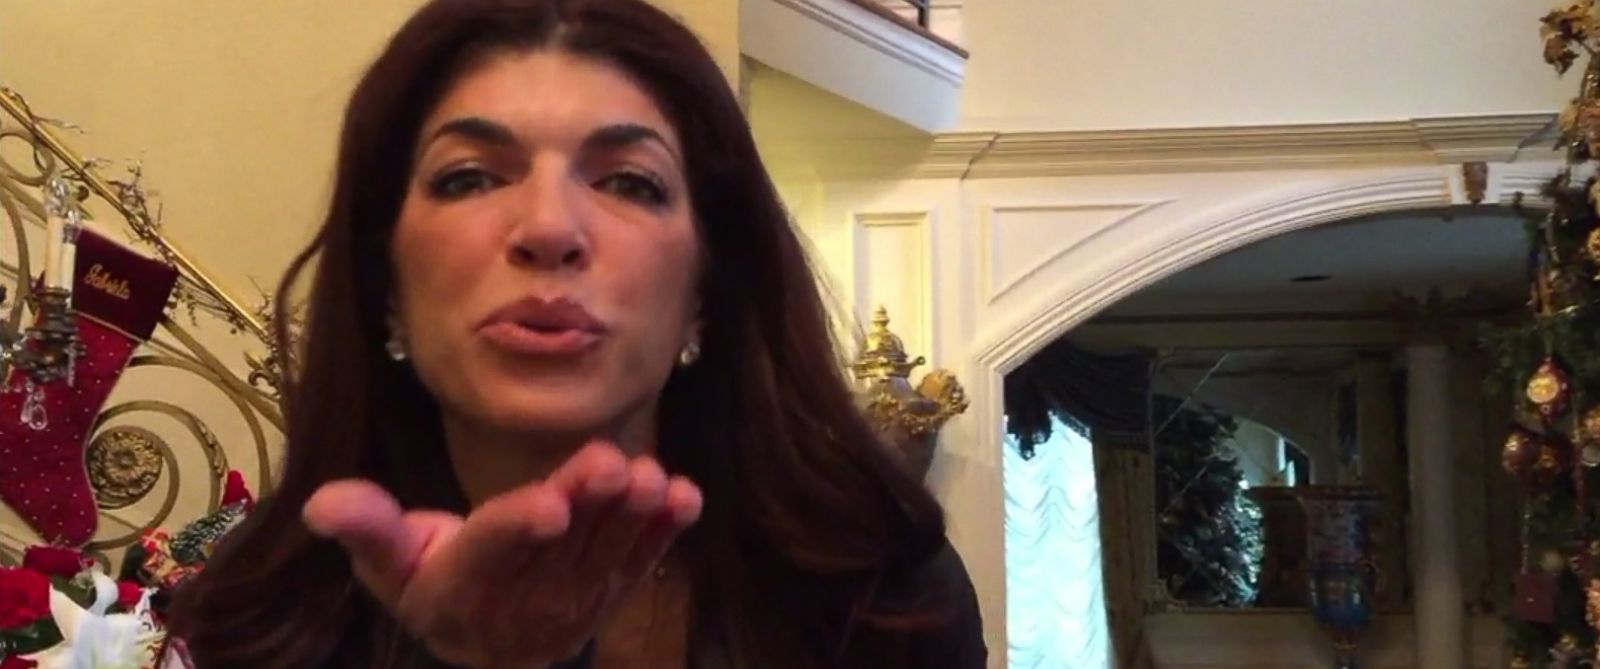 "PHOTO: Teresa Giudice blows a kiss to the camera in a video posted on Dec. 30, 2015 on the website for Bravos, ""The Daily Dish."""